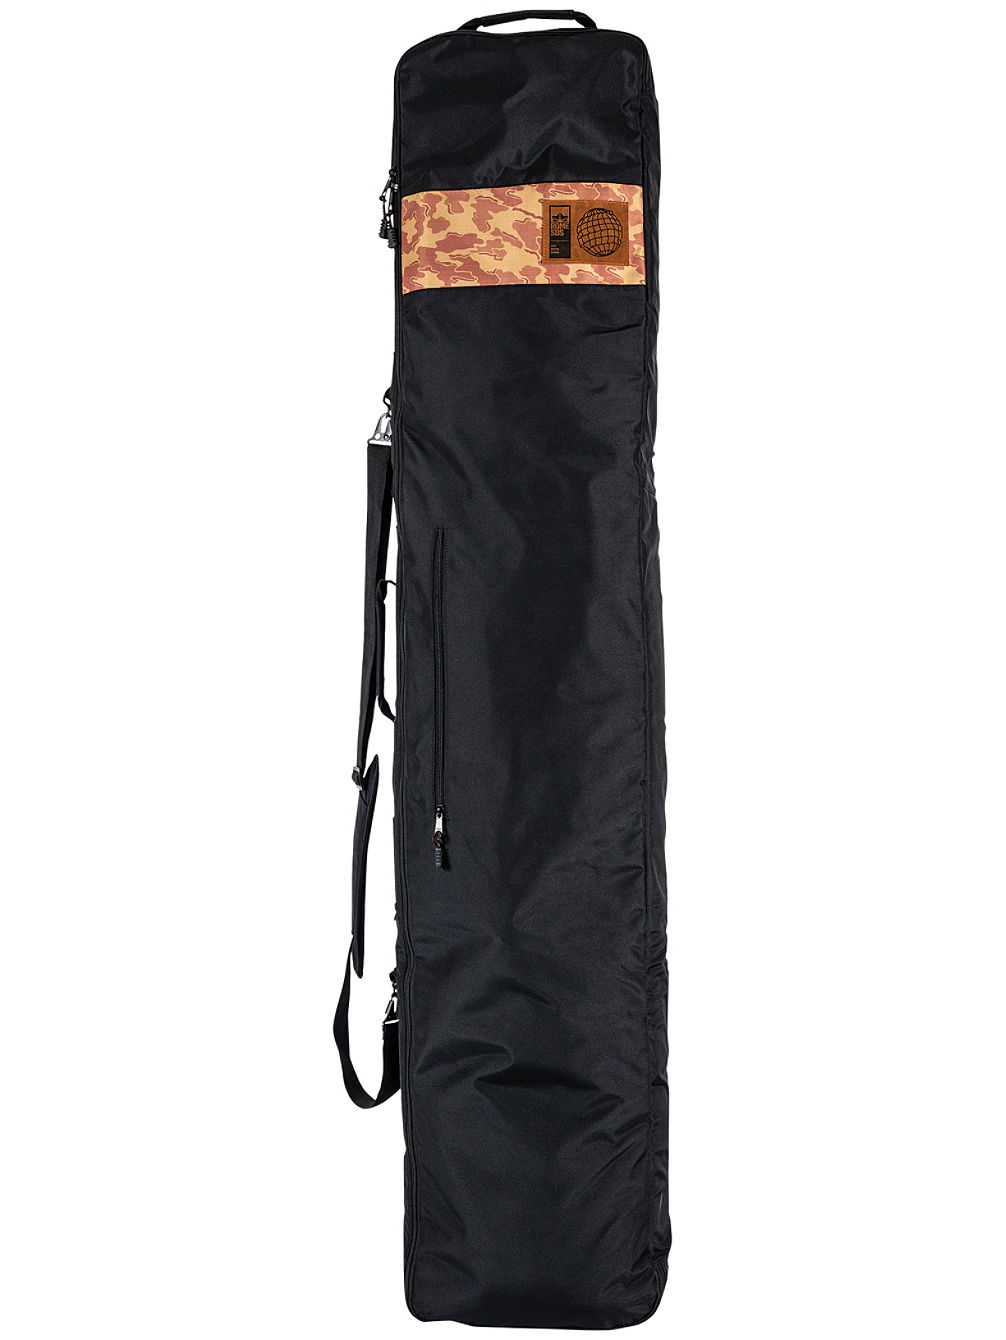 Roadie Snowboard Bag